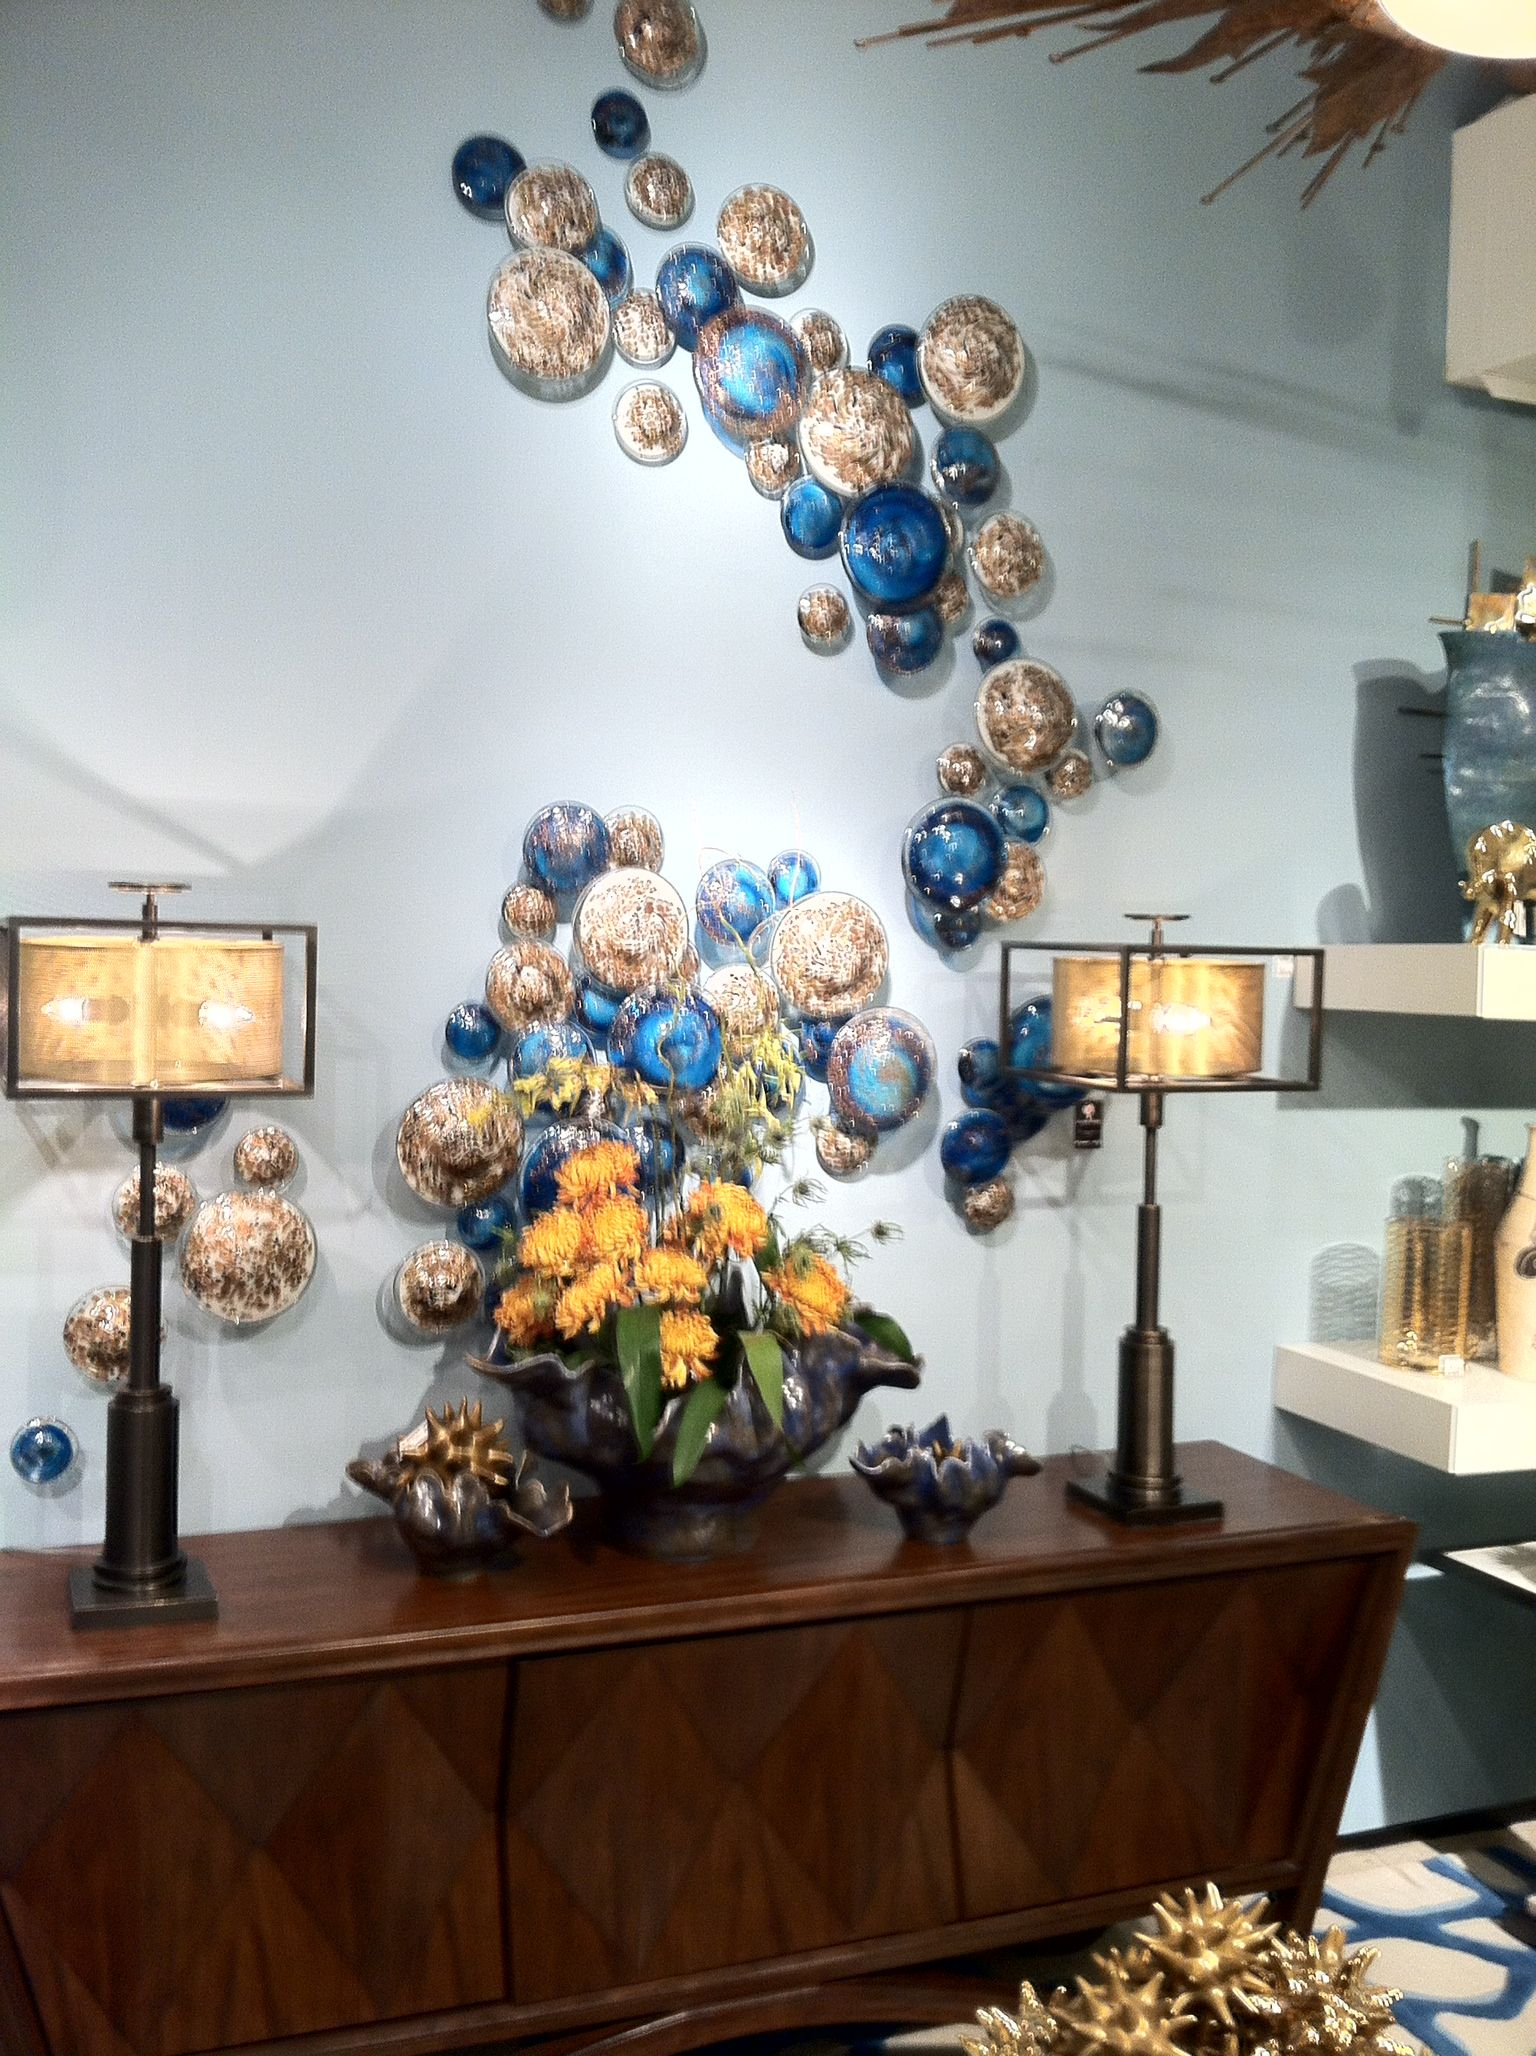 A Fanciful Wall Display Featuring Blown Glass Mushrooms From Global Views Hpmkt Blown Glass Wall Art Glass Wall Art Fused Glass Wall Art